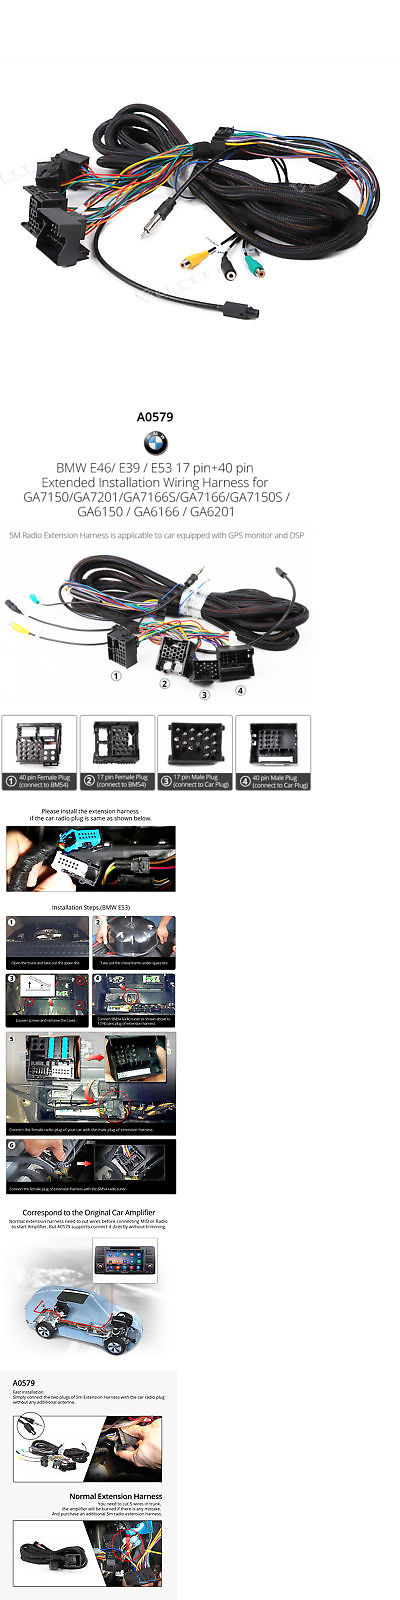 8777793387a0c5848abfccd0248158d6 other car electronics accs a0579 e1 bmw extended wiring harness Wiring Harness Diagram at aneh.co